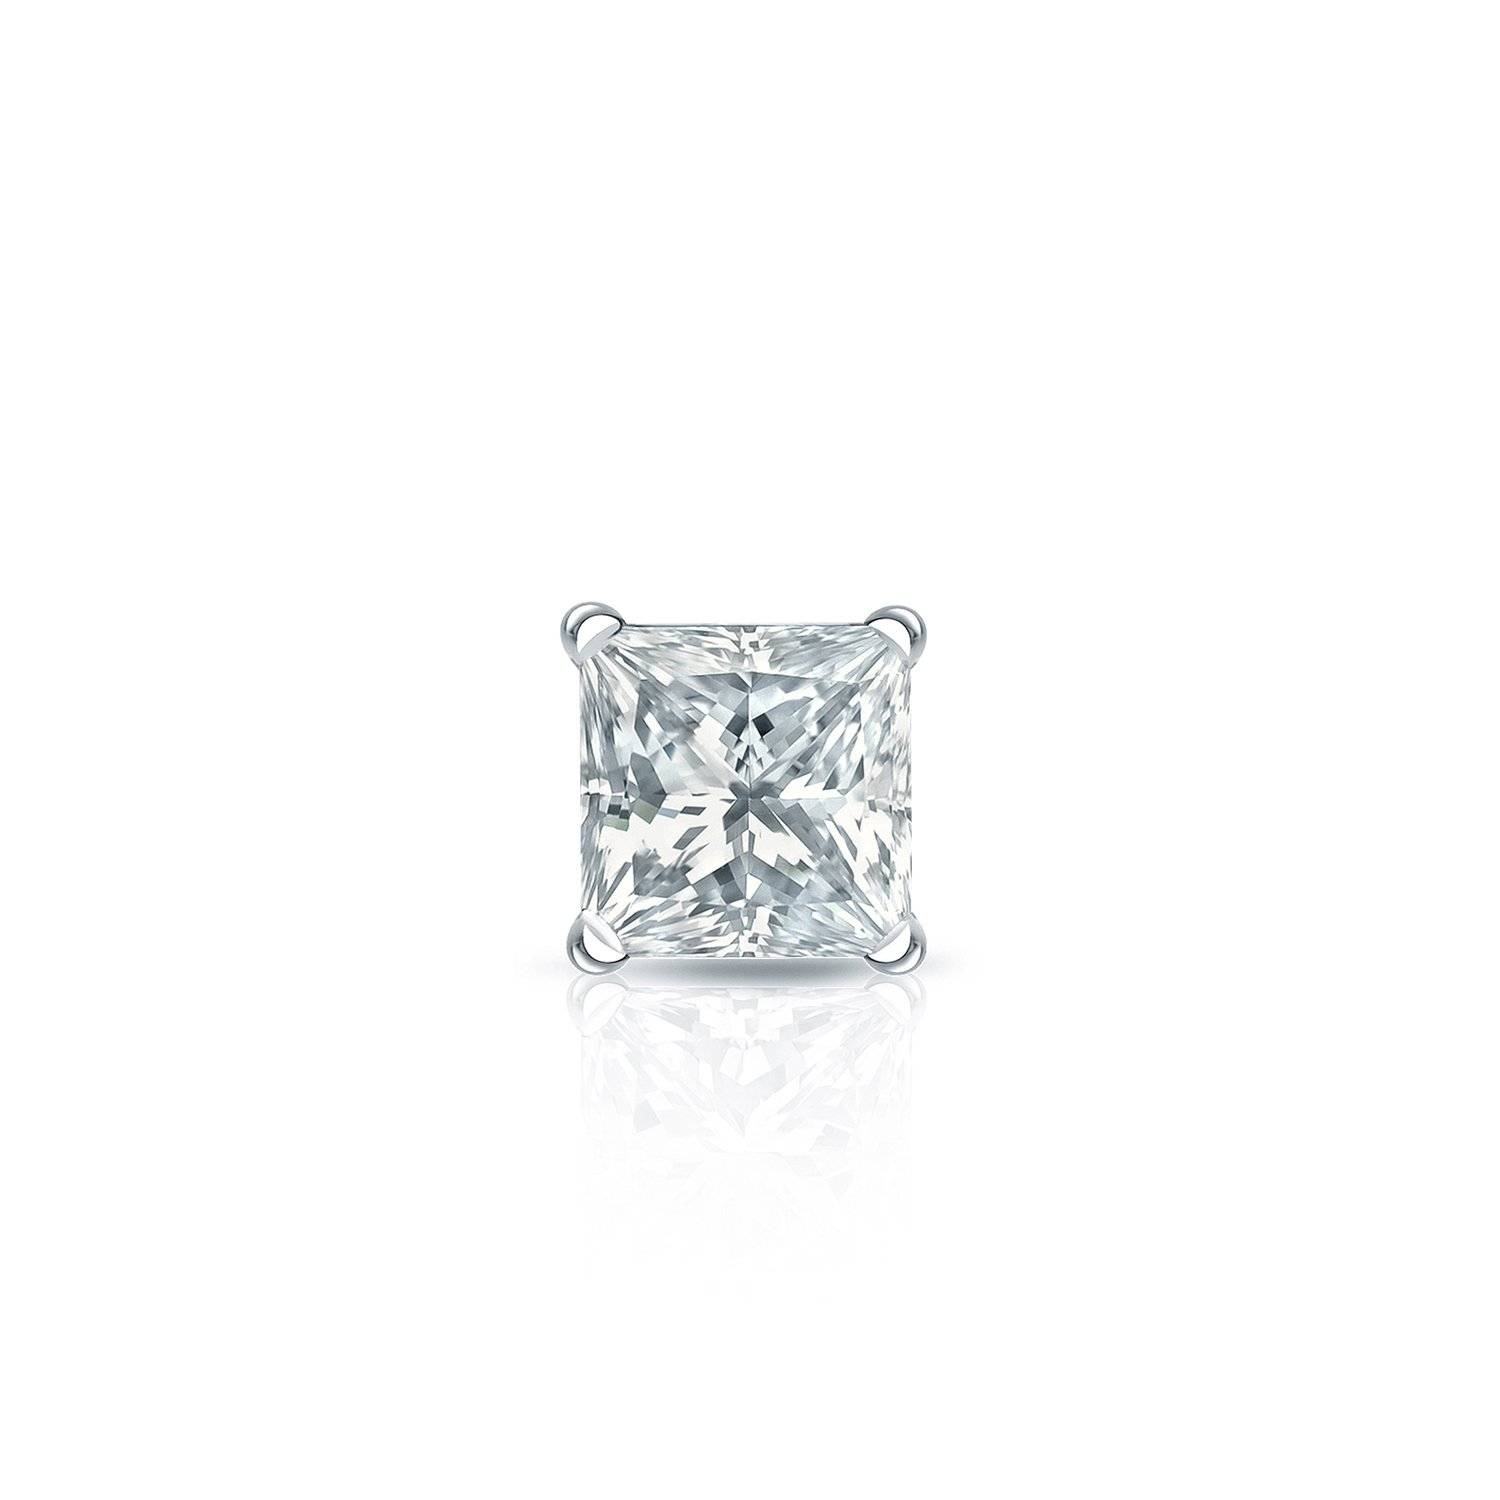 1//8-1ct,Excellent Quality 14k White Gold Princess Diamond Simulant CZ SINGLE STUD Earring 4Prong